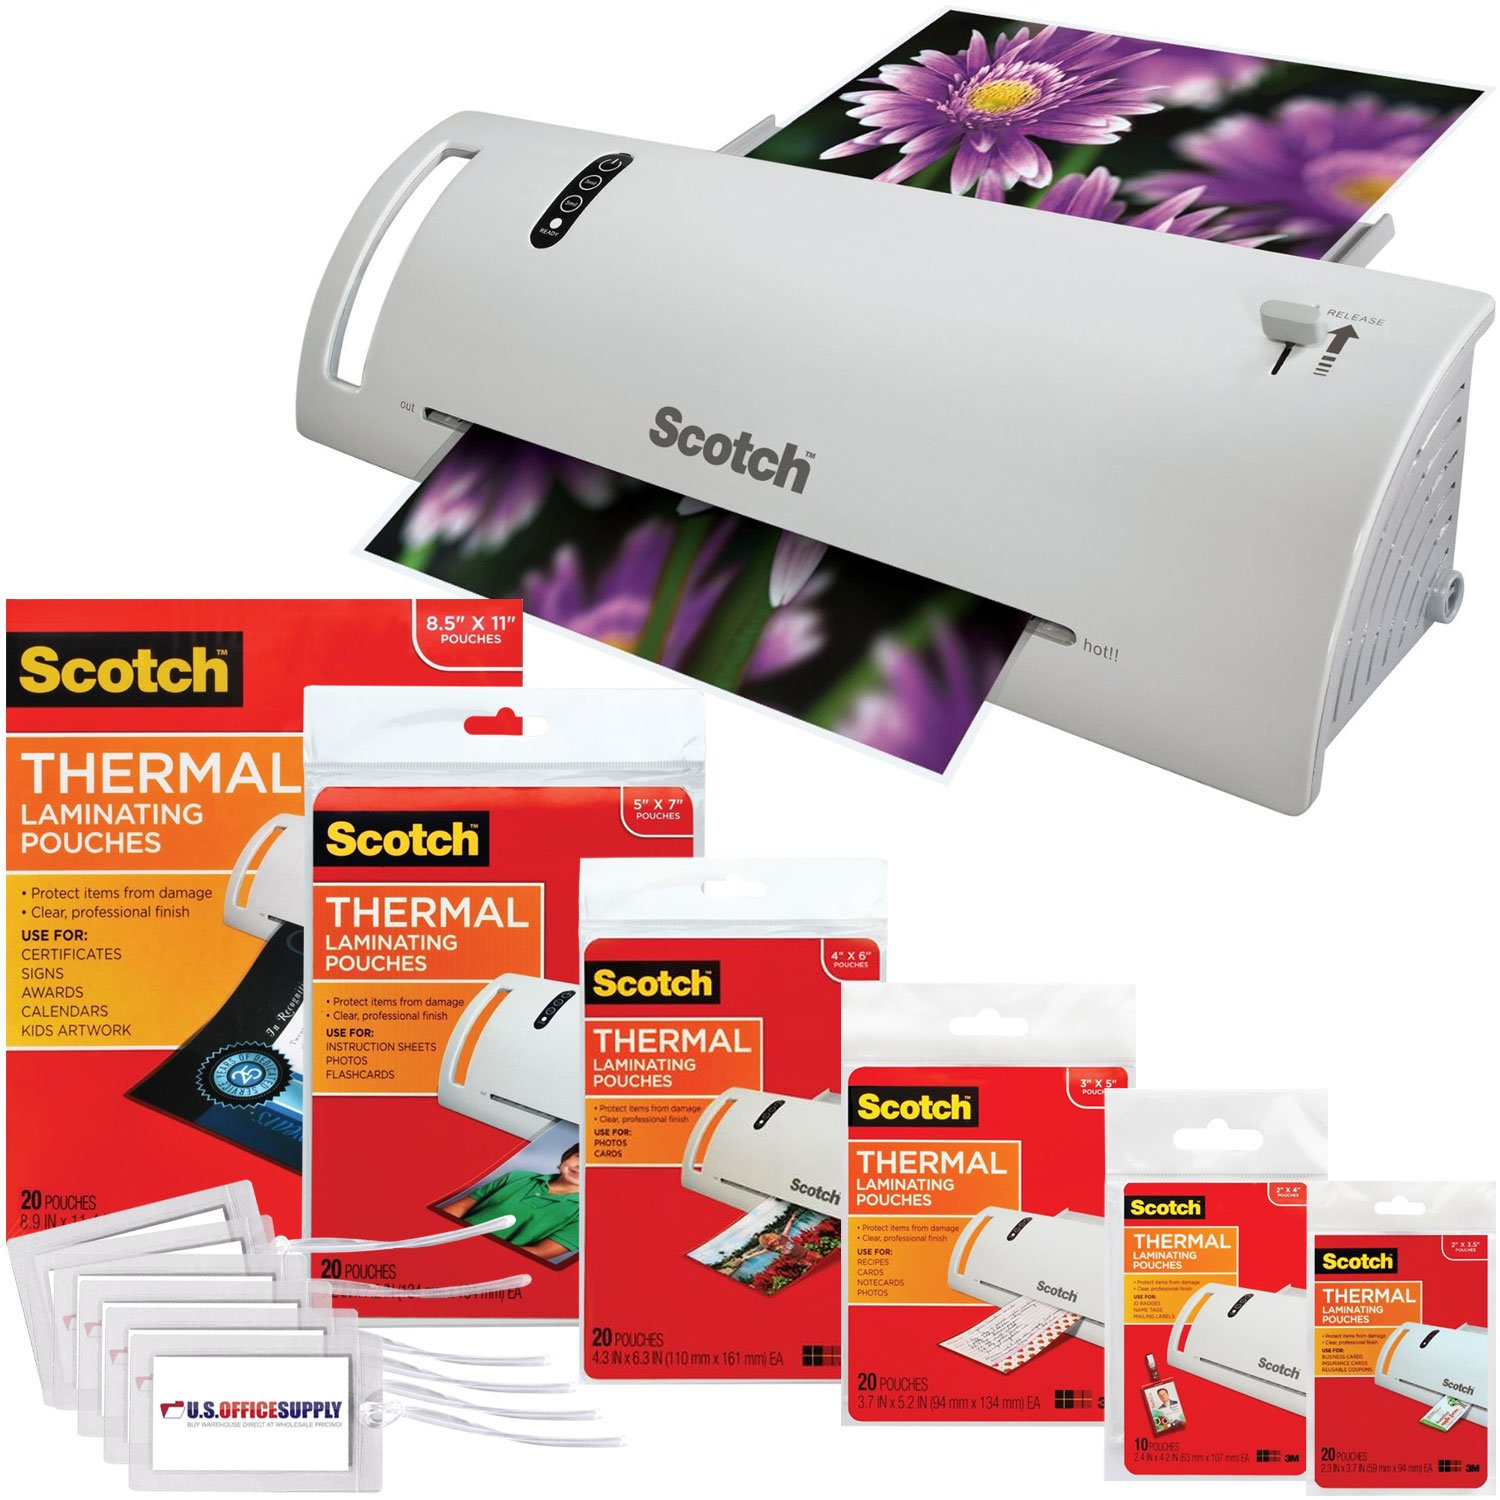 Scotch Thermal Laminator Combo Pack Holds Sheets Up To 8.5'' x 11(TL902A) 110 Piece Assorted Pouch Sizes & Scotch Brand Luggage Tags by US Office Supply